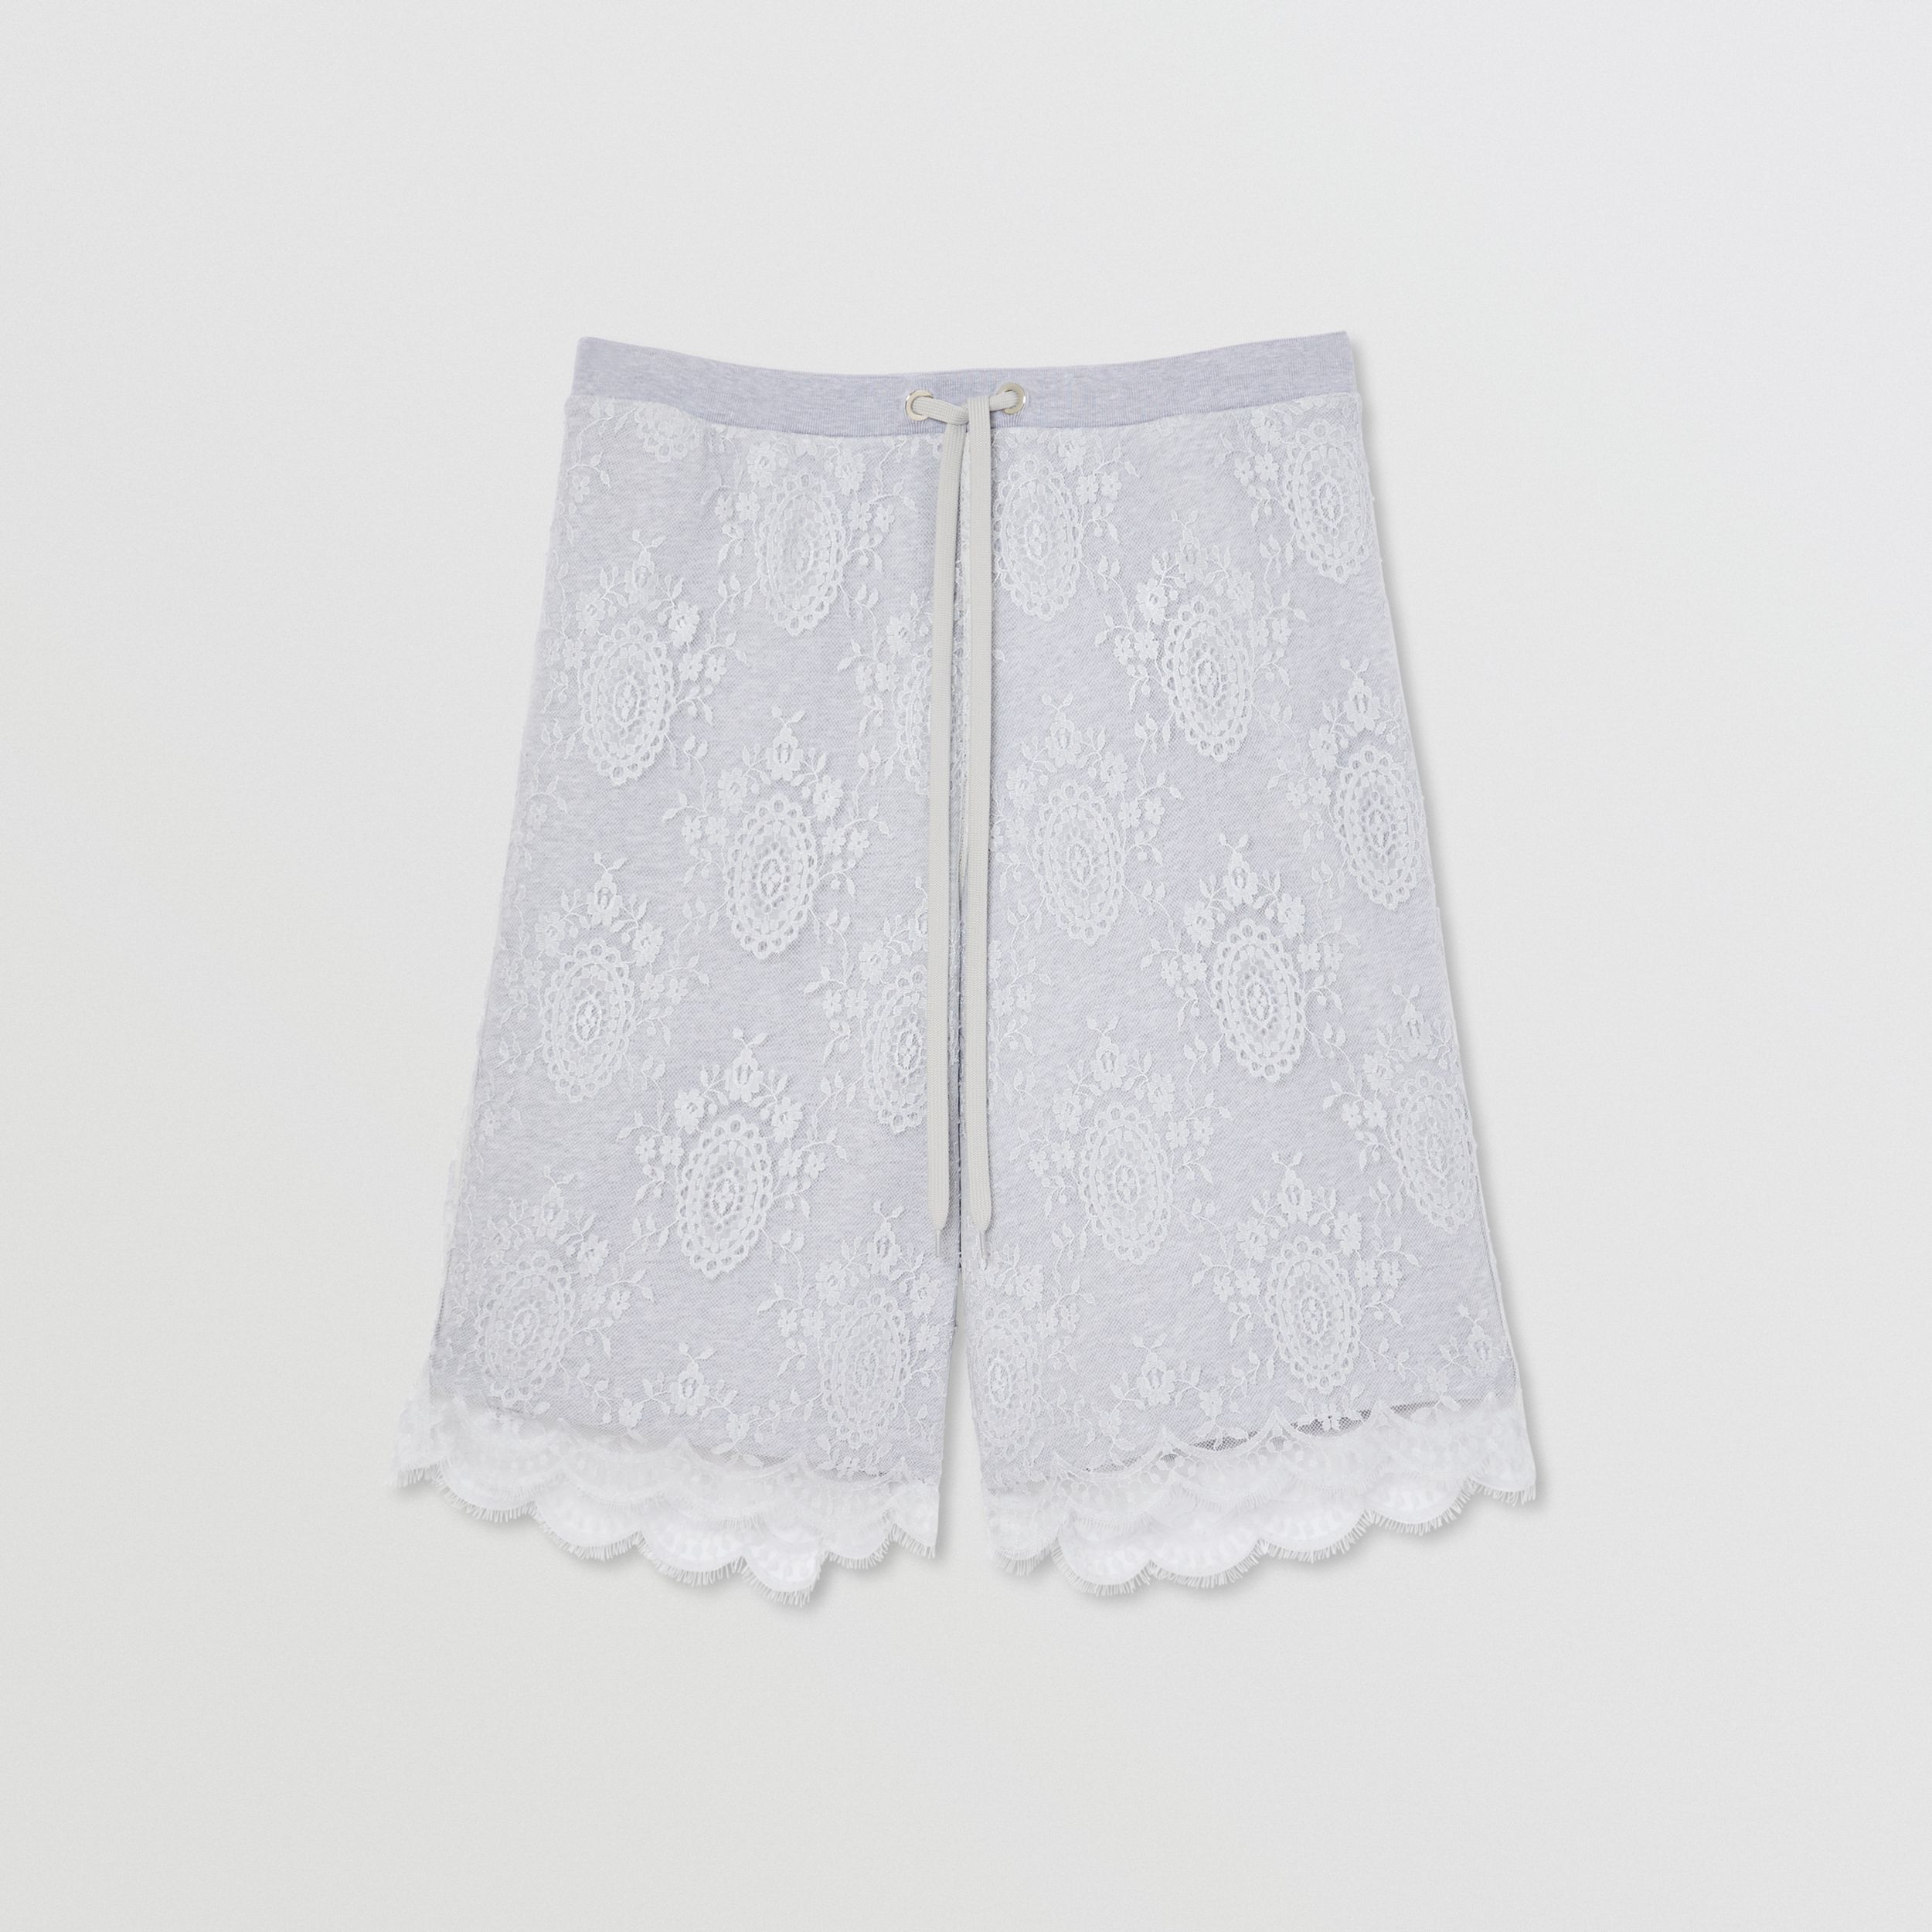 Chantilly Lace and Cotton Drawcord Shorts in Light Pebble Grey - Men | Burberry Canada - 4